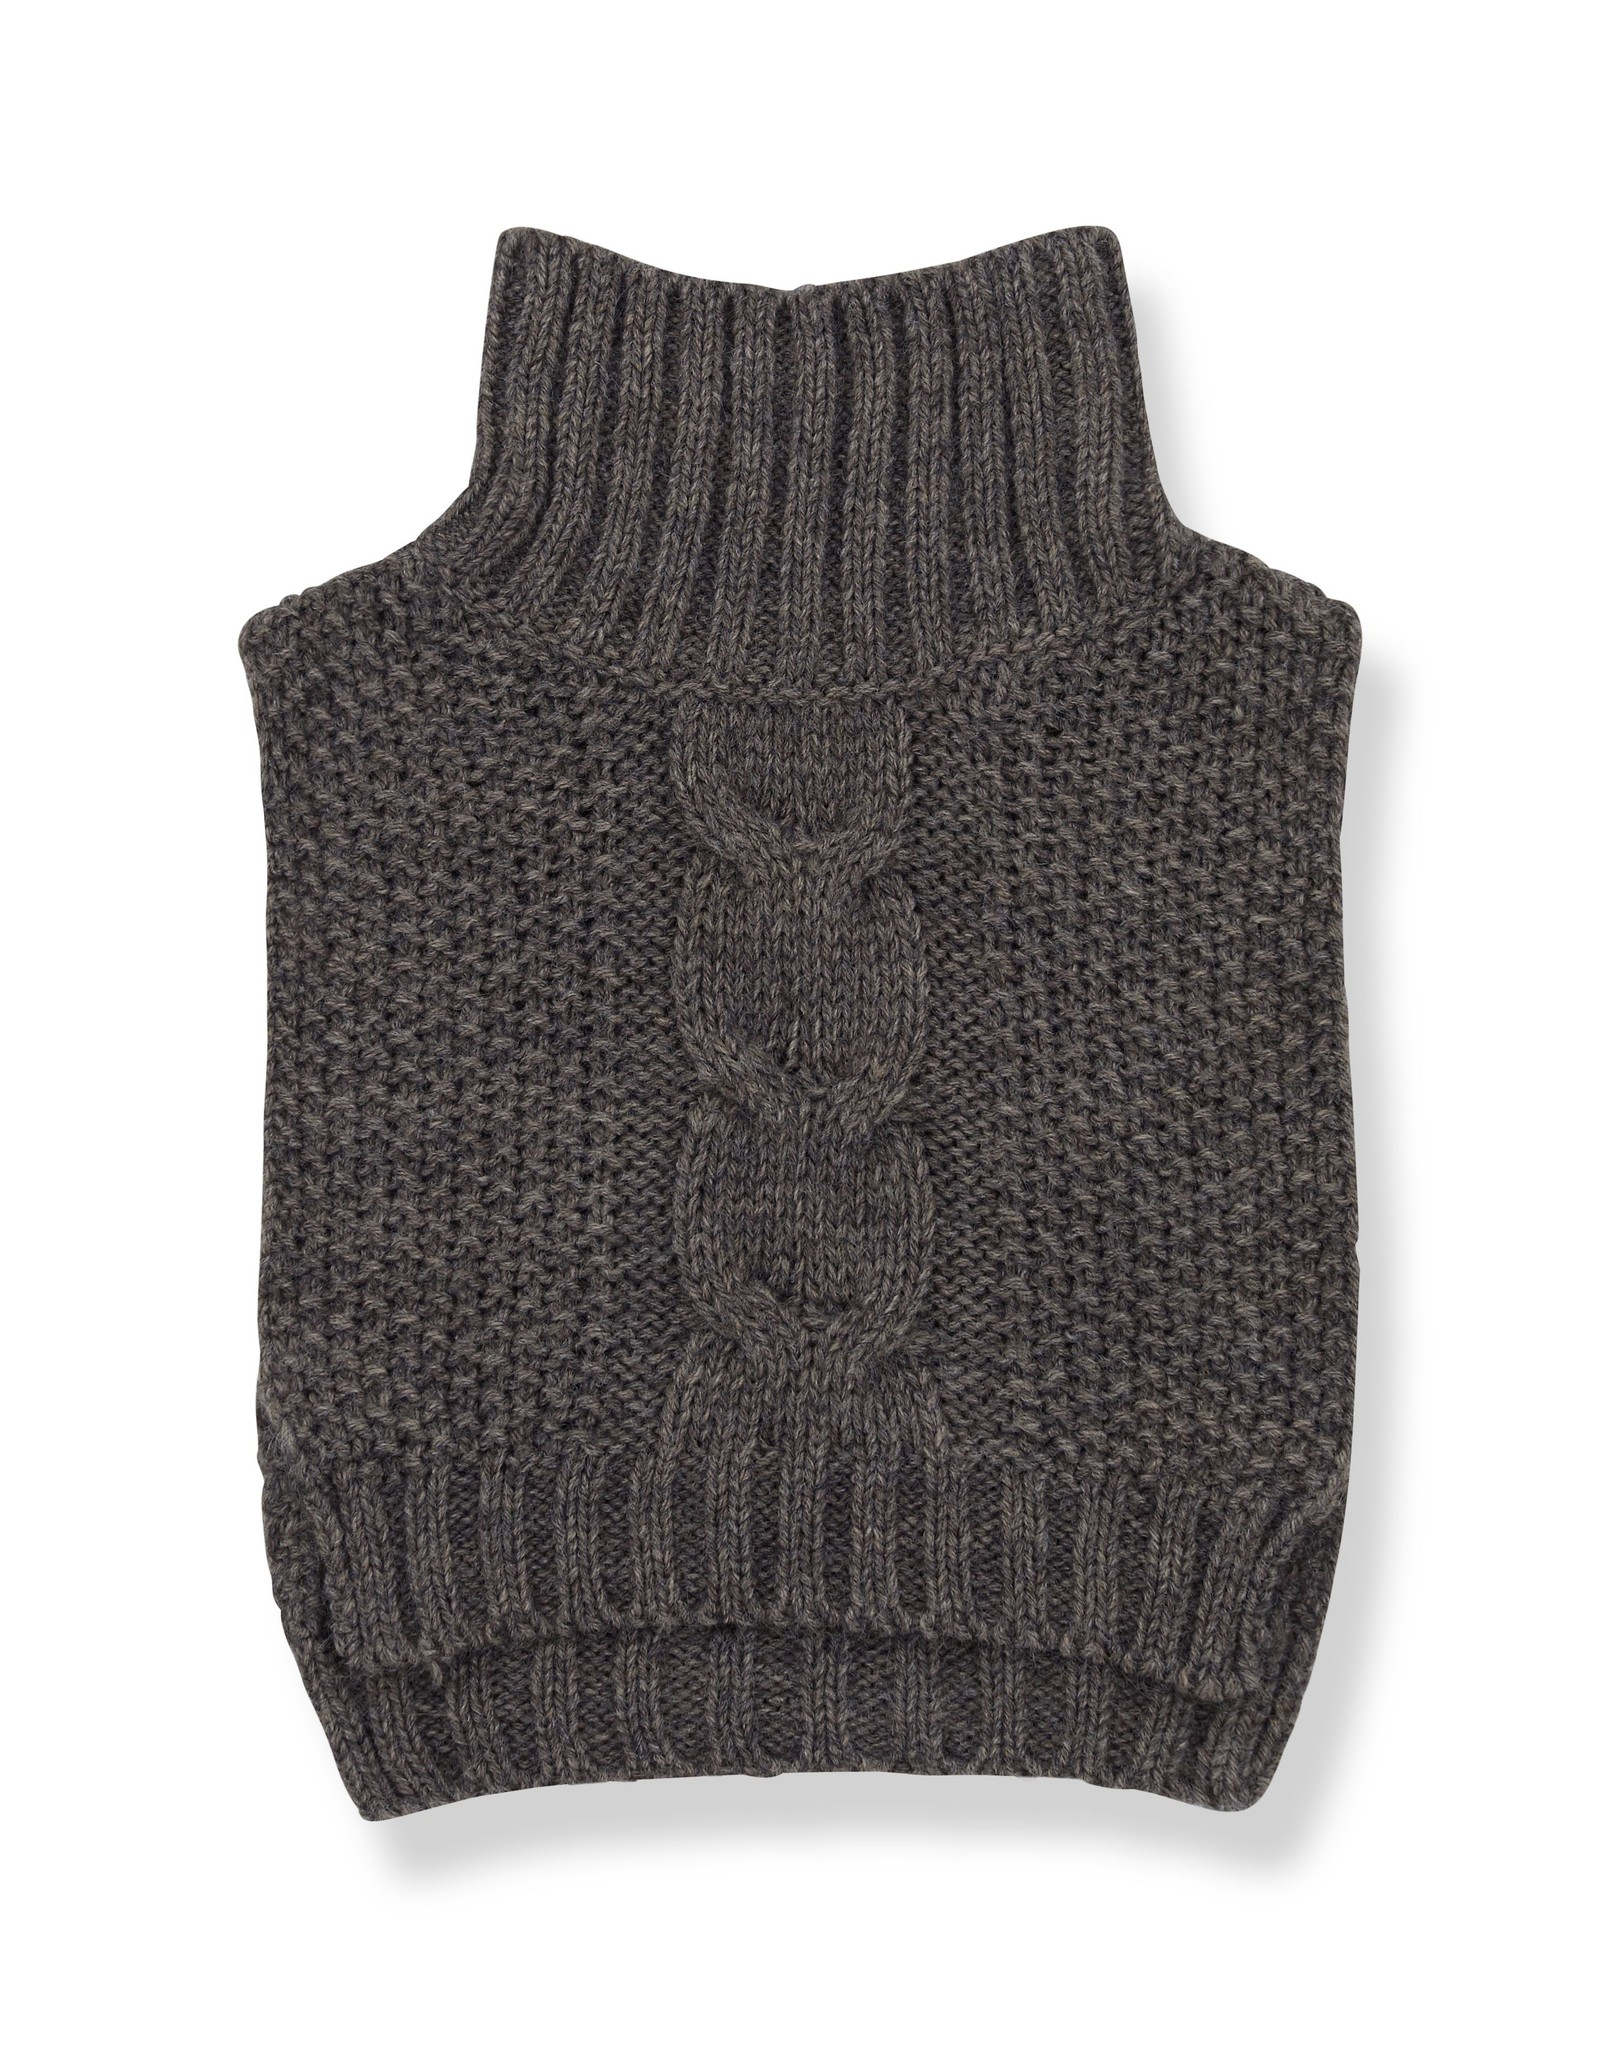 Monch Sleeveless Cardigan